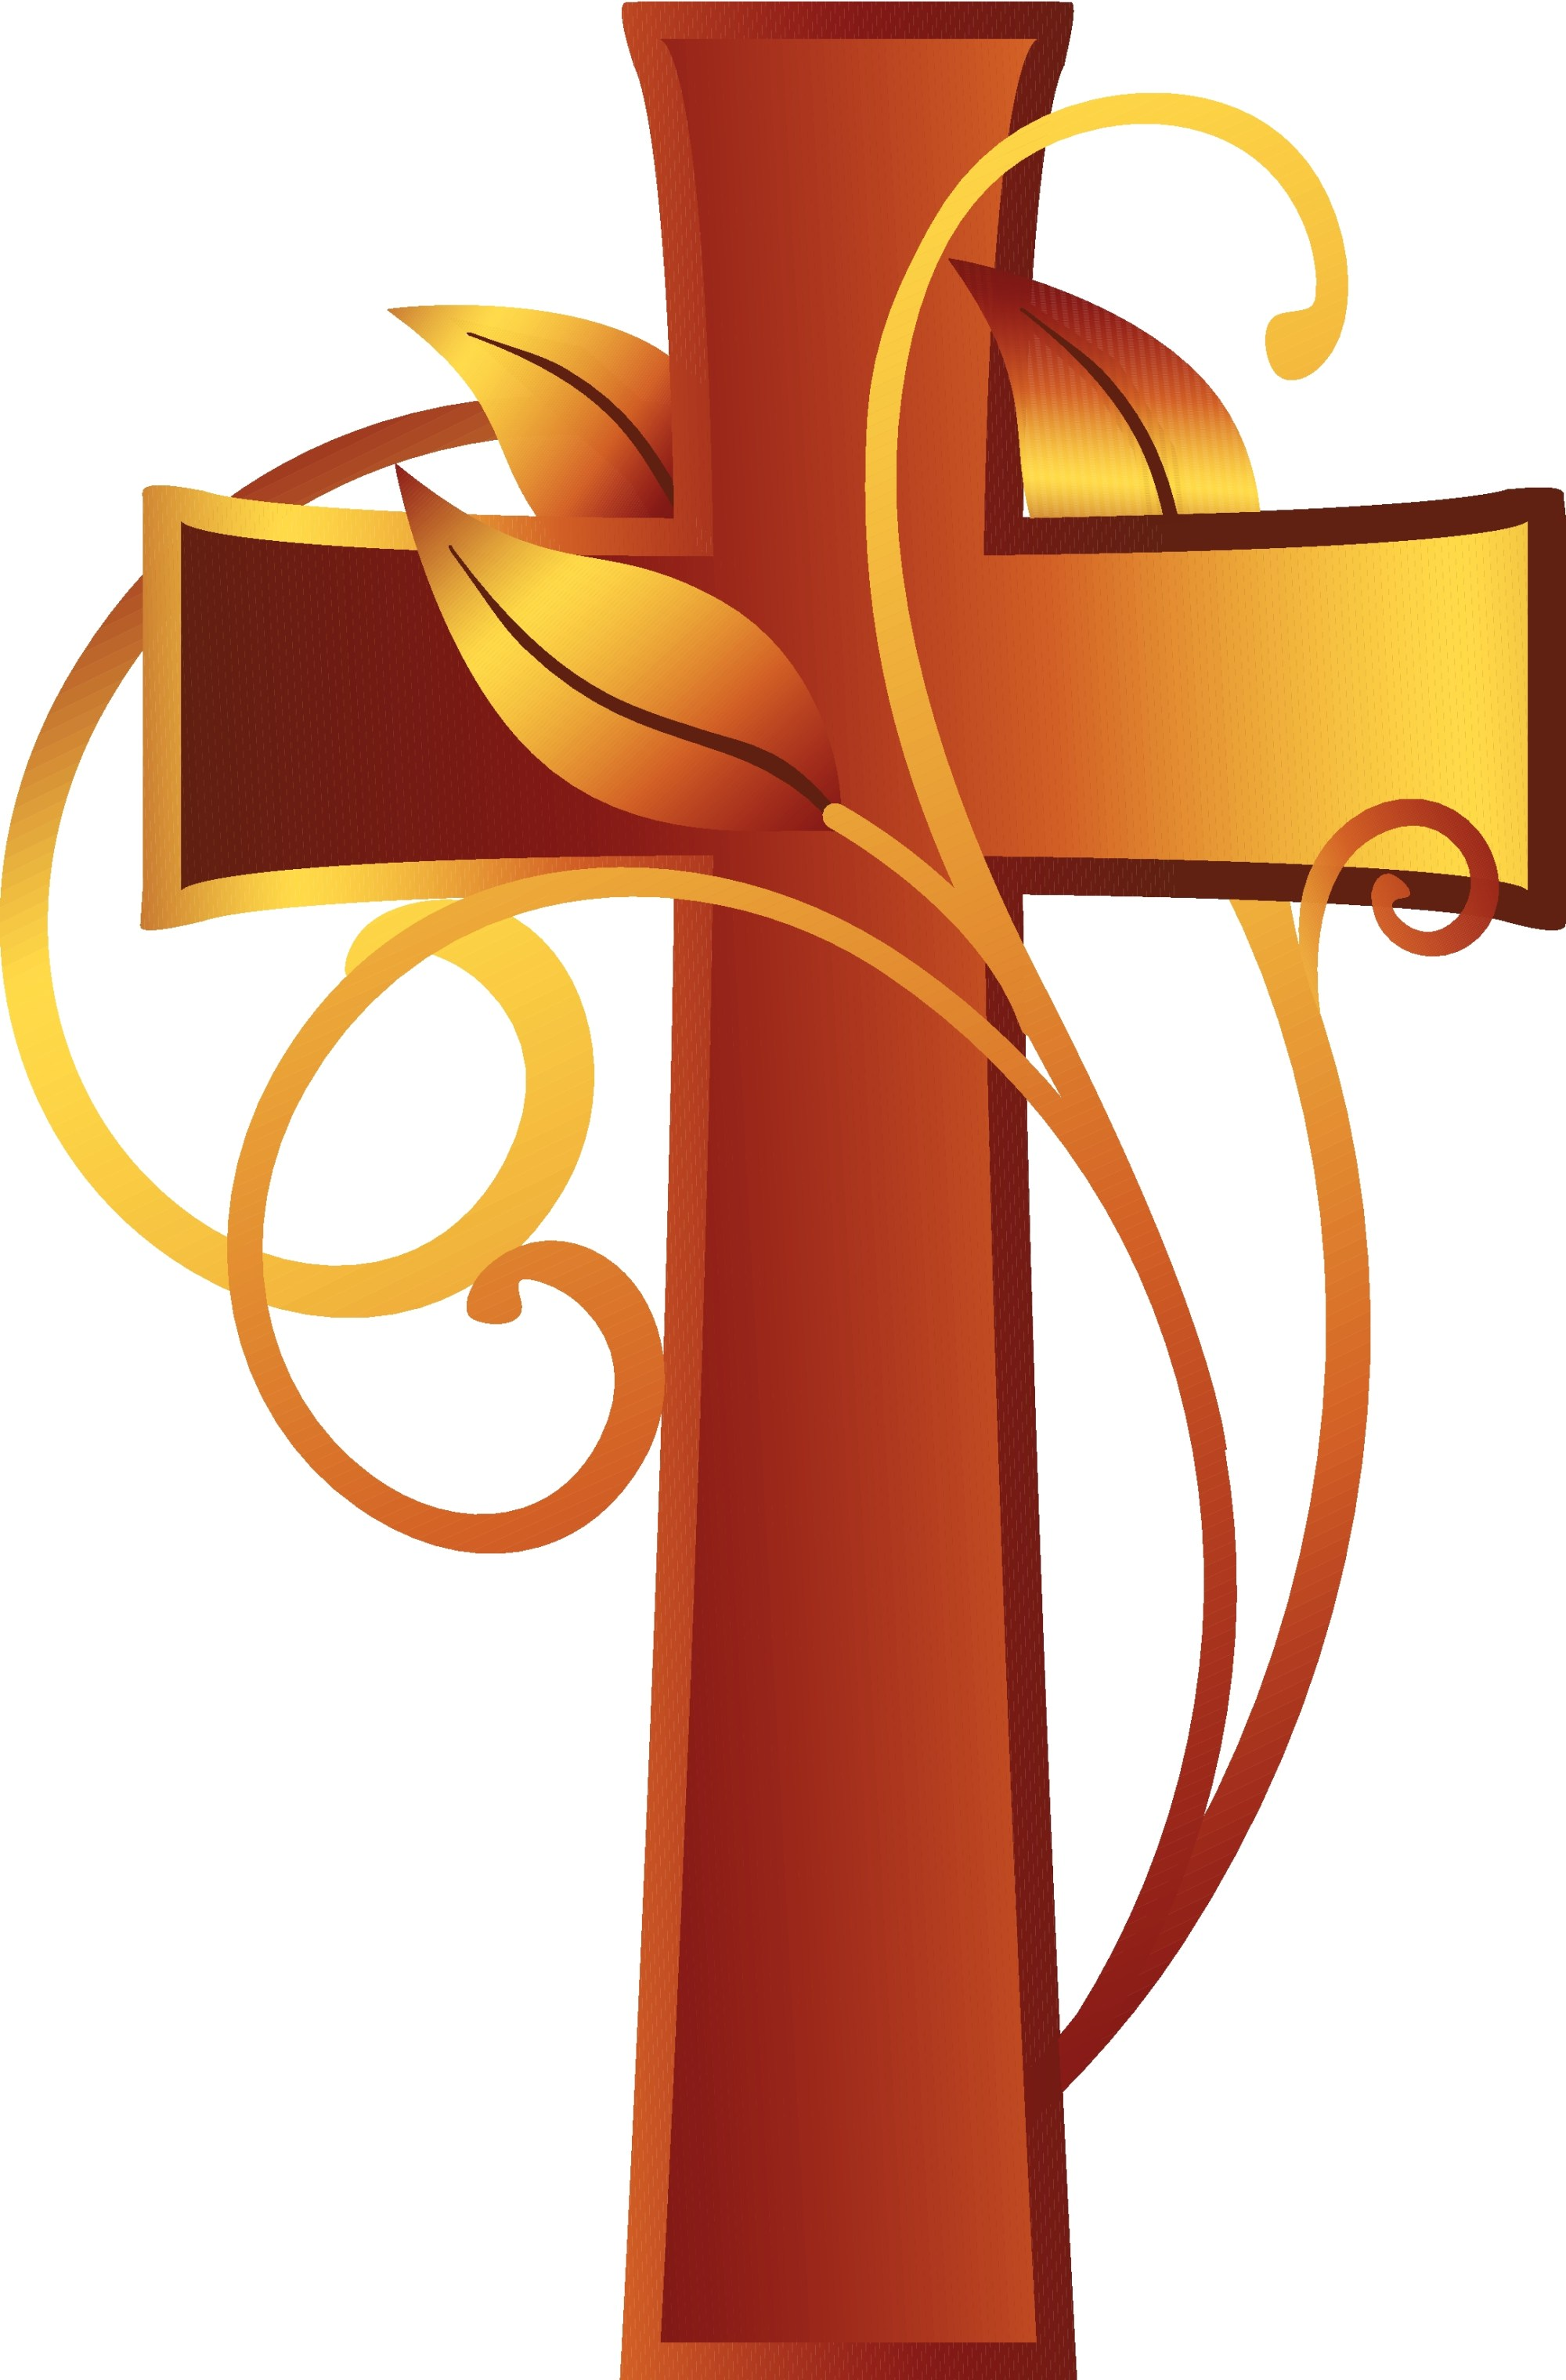 hight resolution of free christian clipart for church bulletins religious